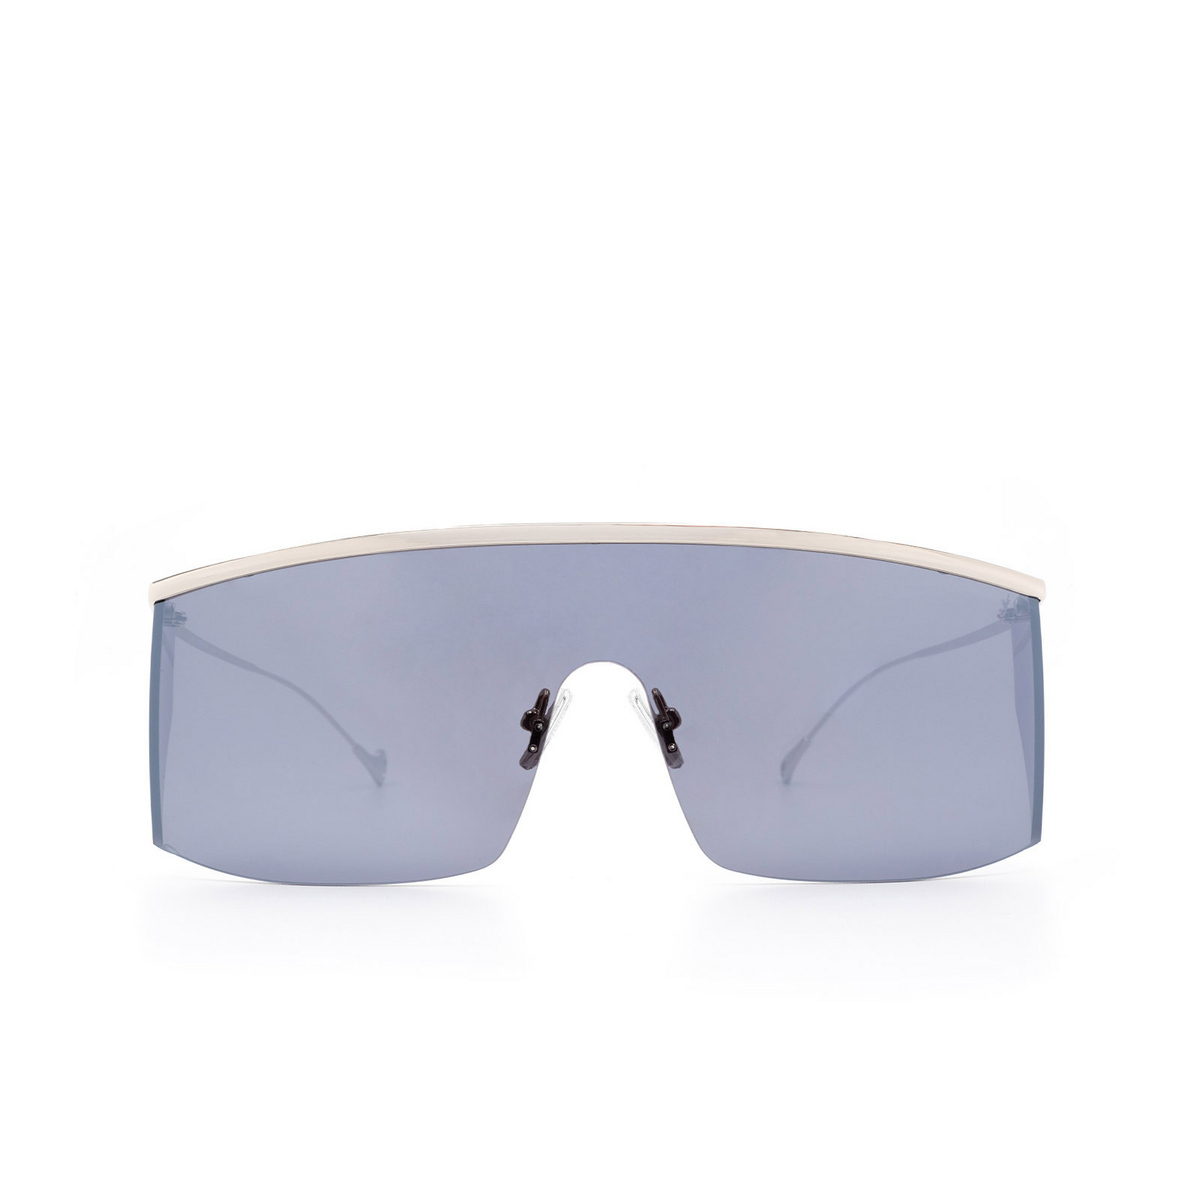 Eyepetizer® Mask Sunglasses: Karl color Silver C.1-7F - front view.